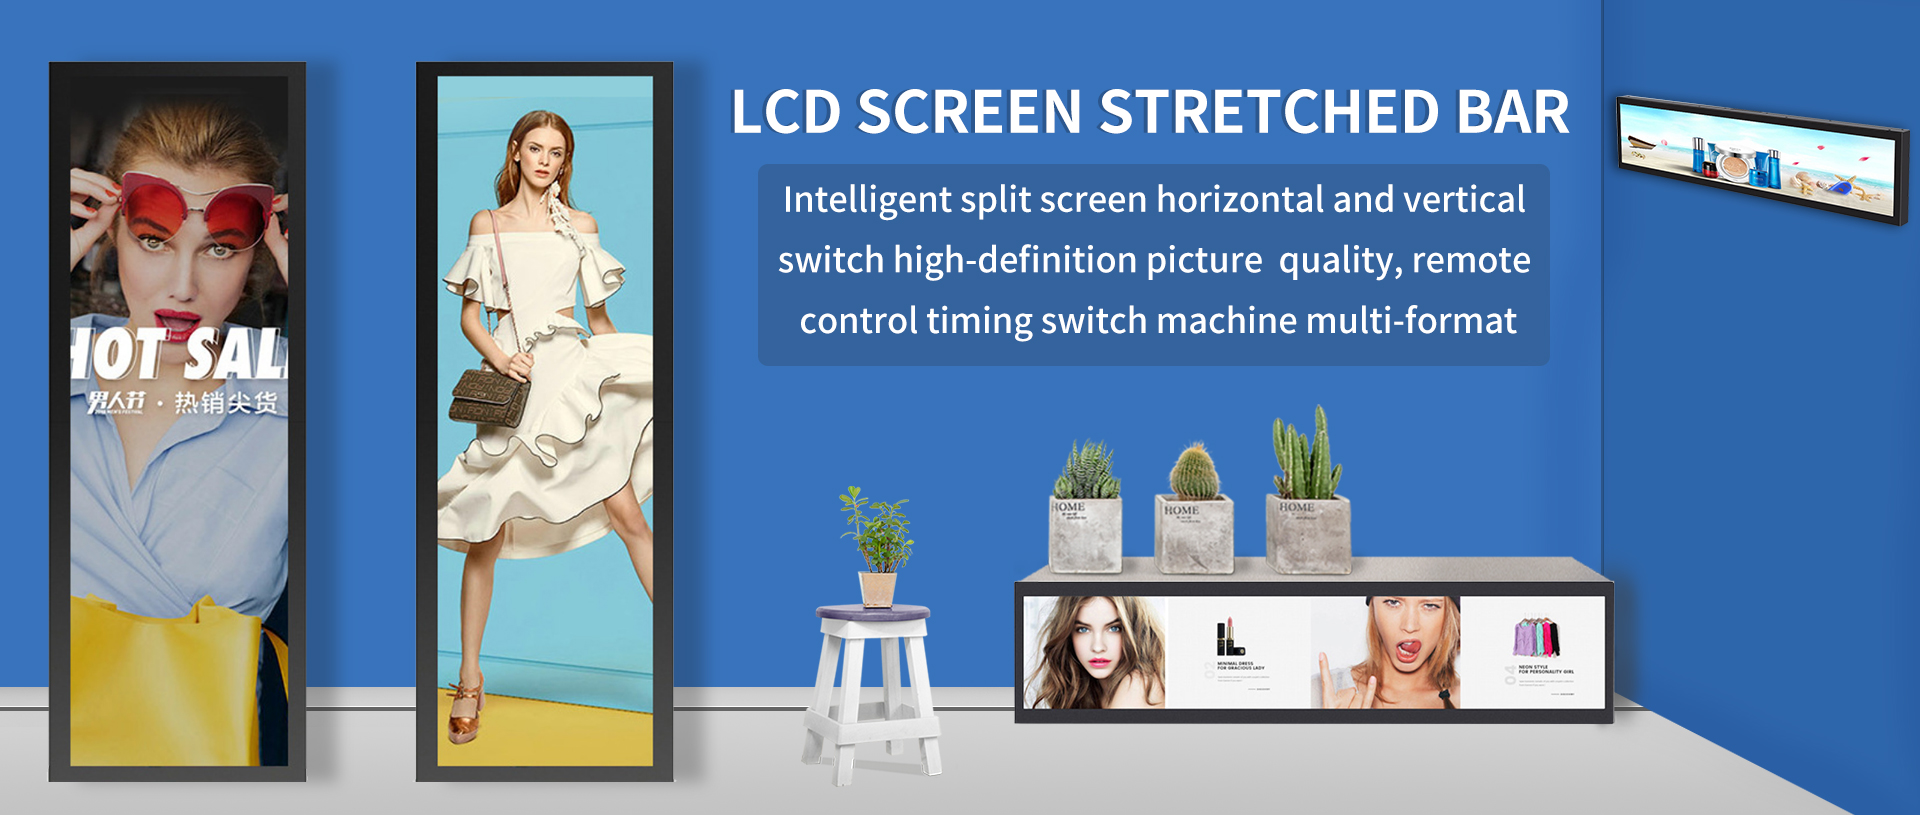 LCD Screen Stretched Bar